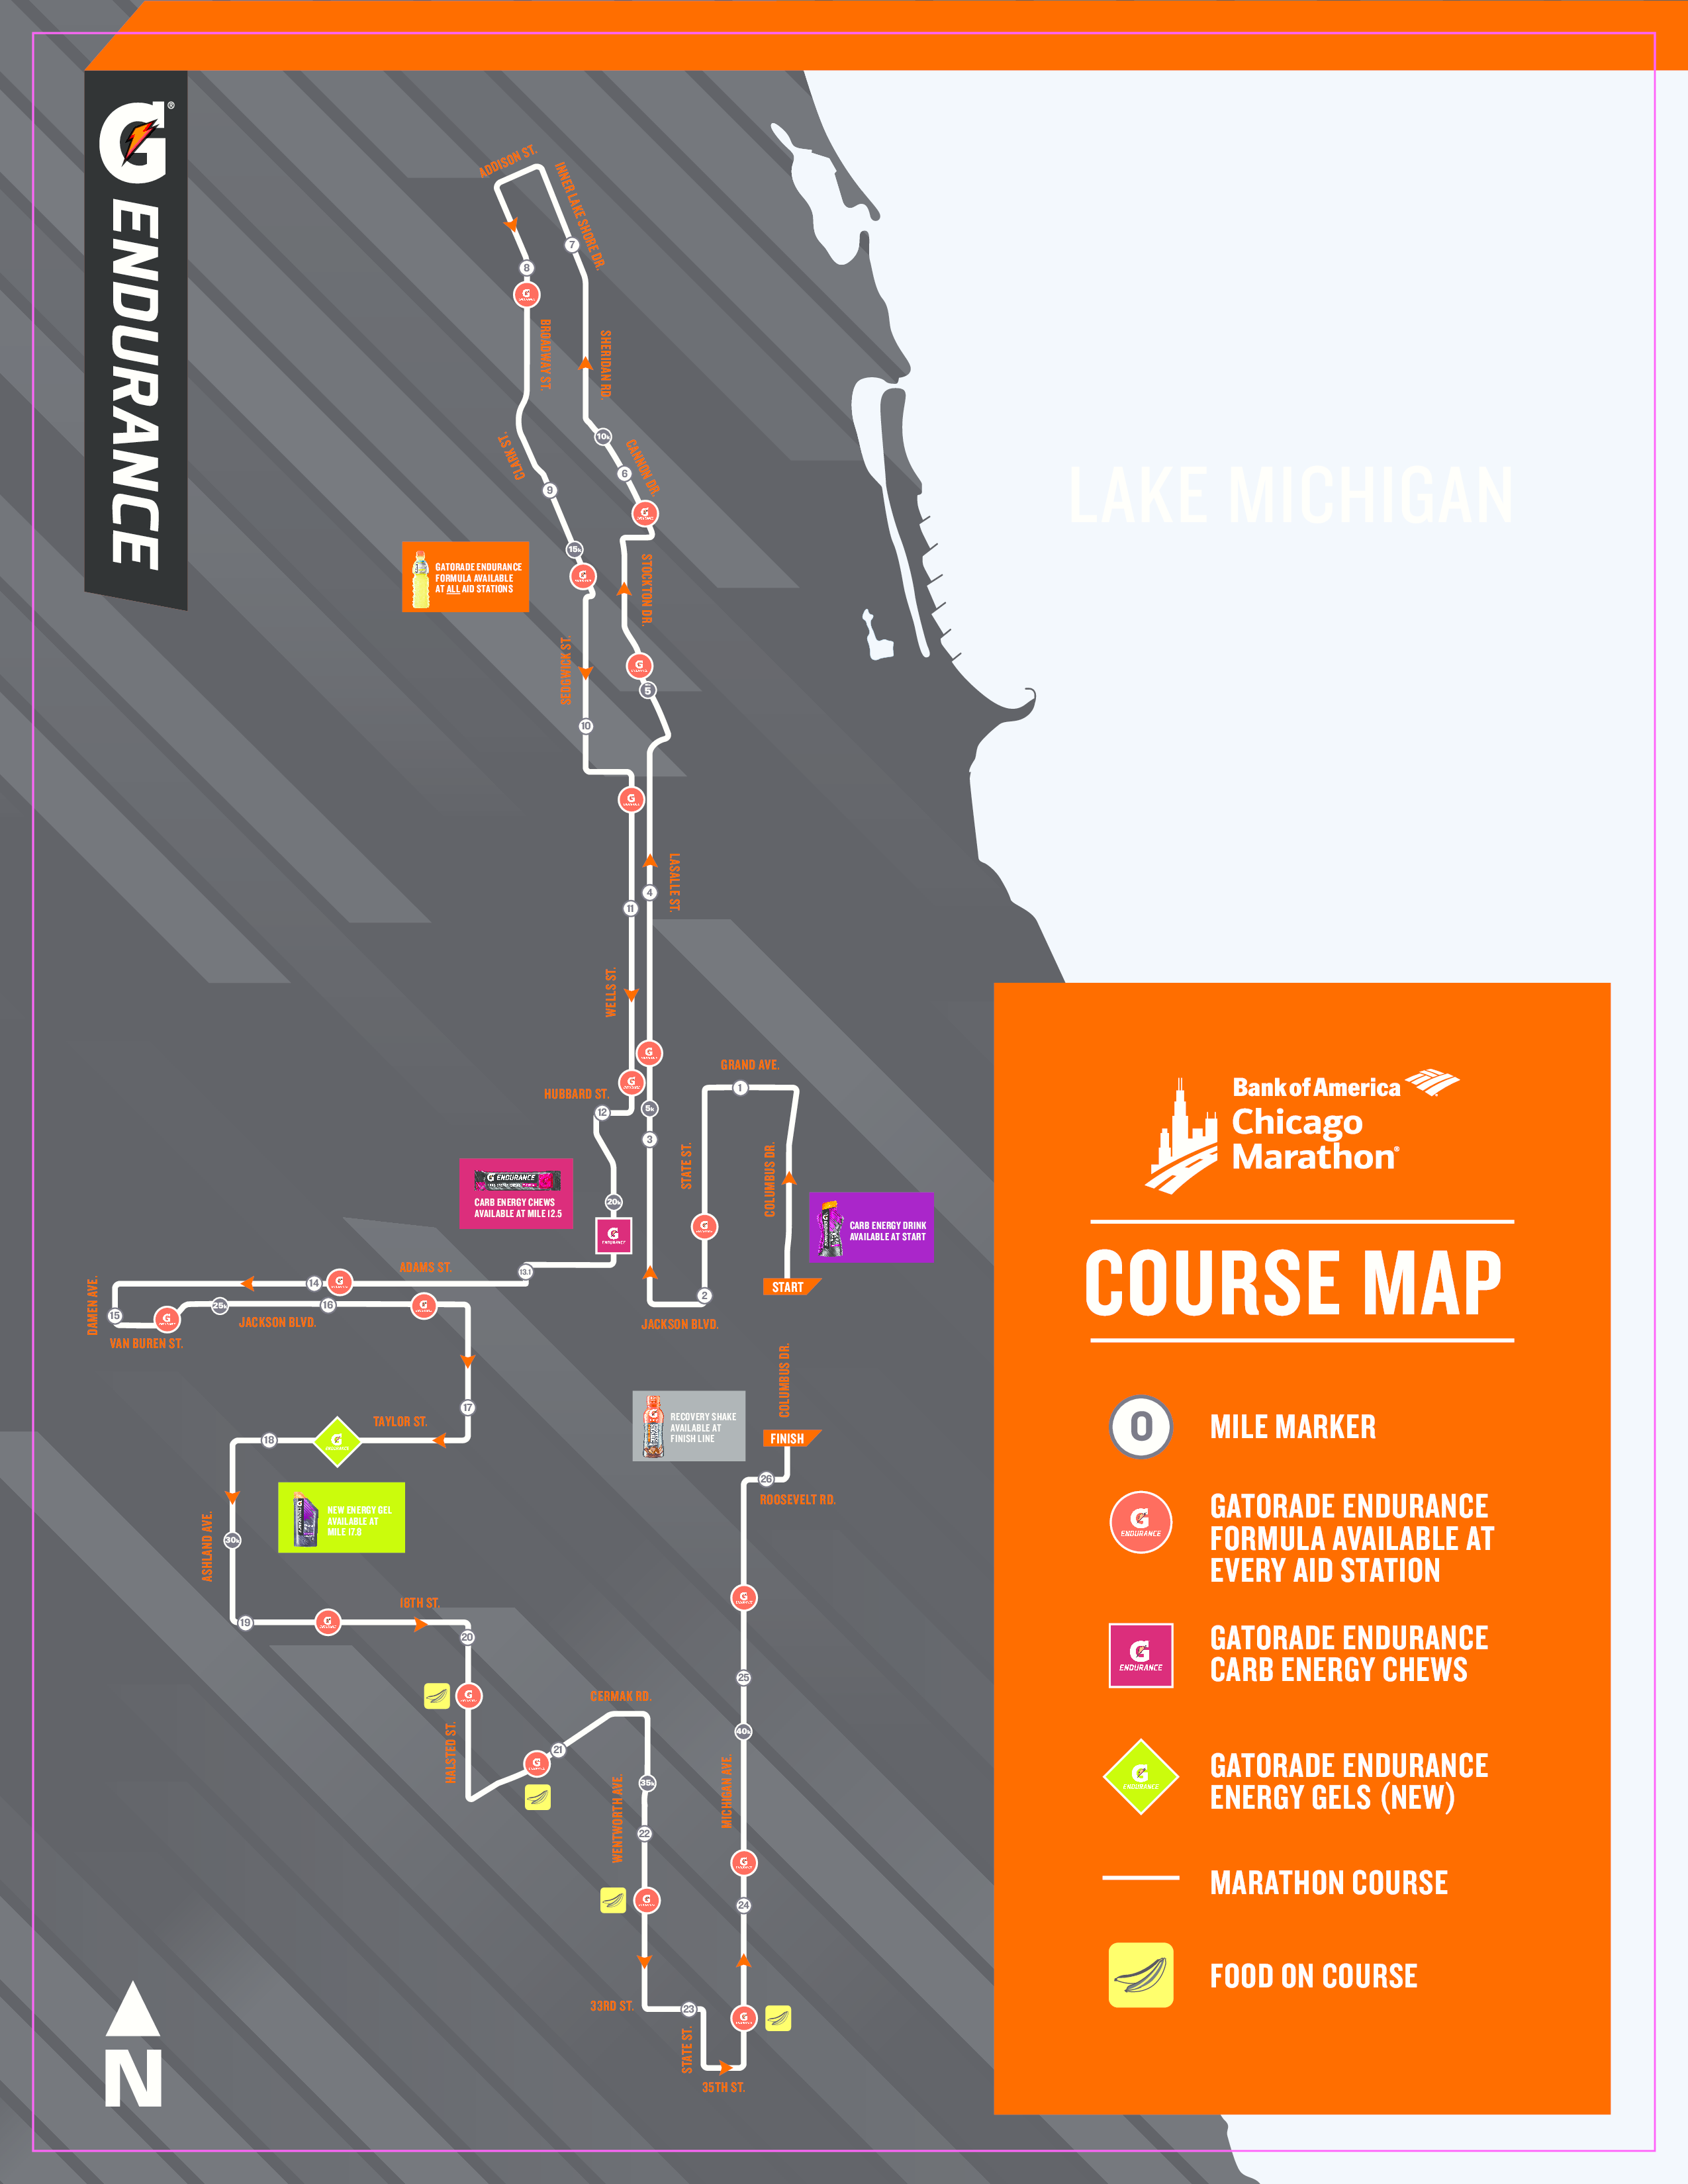 here's a nutrition plan and map of where gatorade endurance